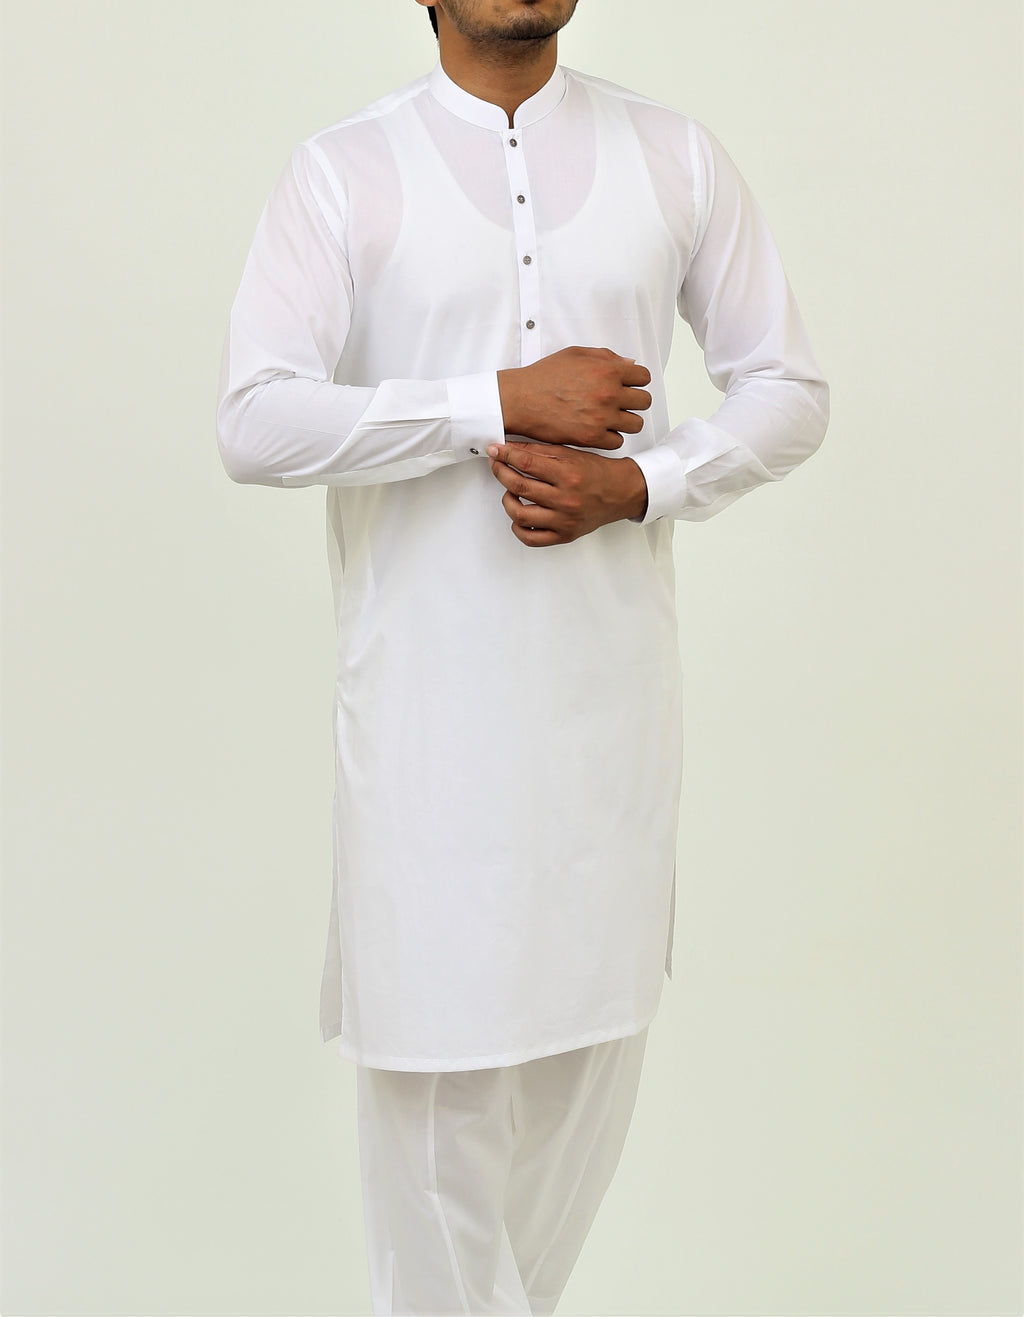 Simply White - Shalwar Qameez Liquid Finish